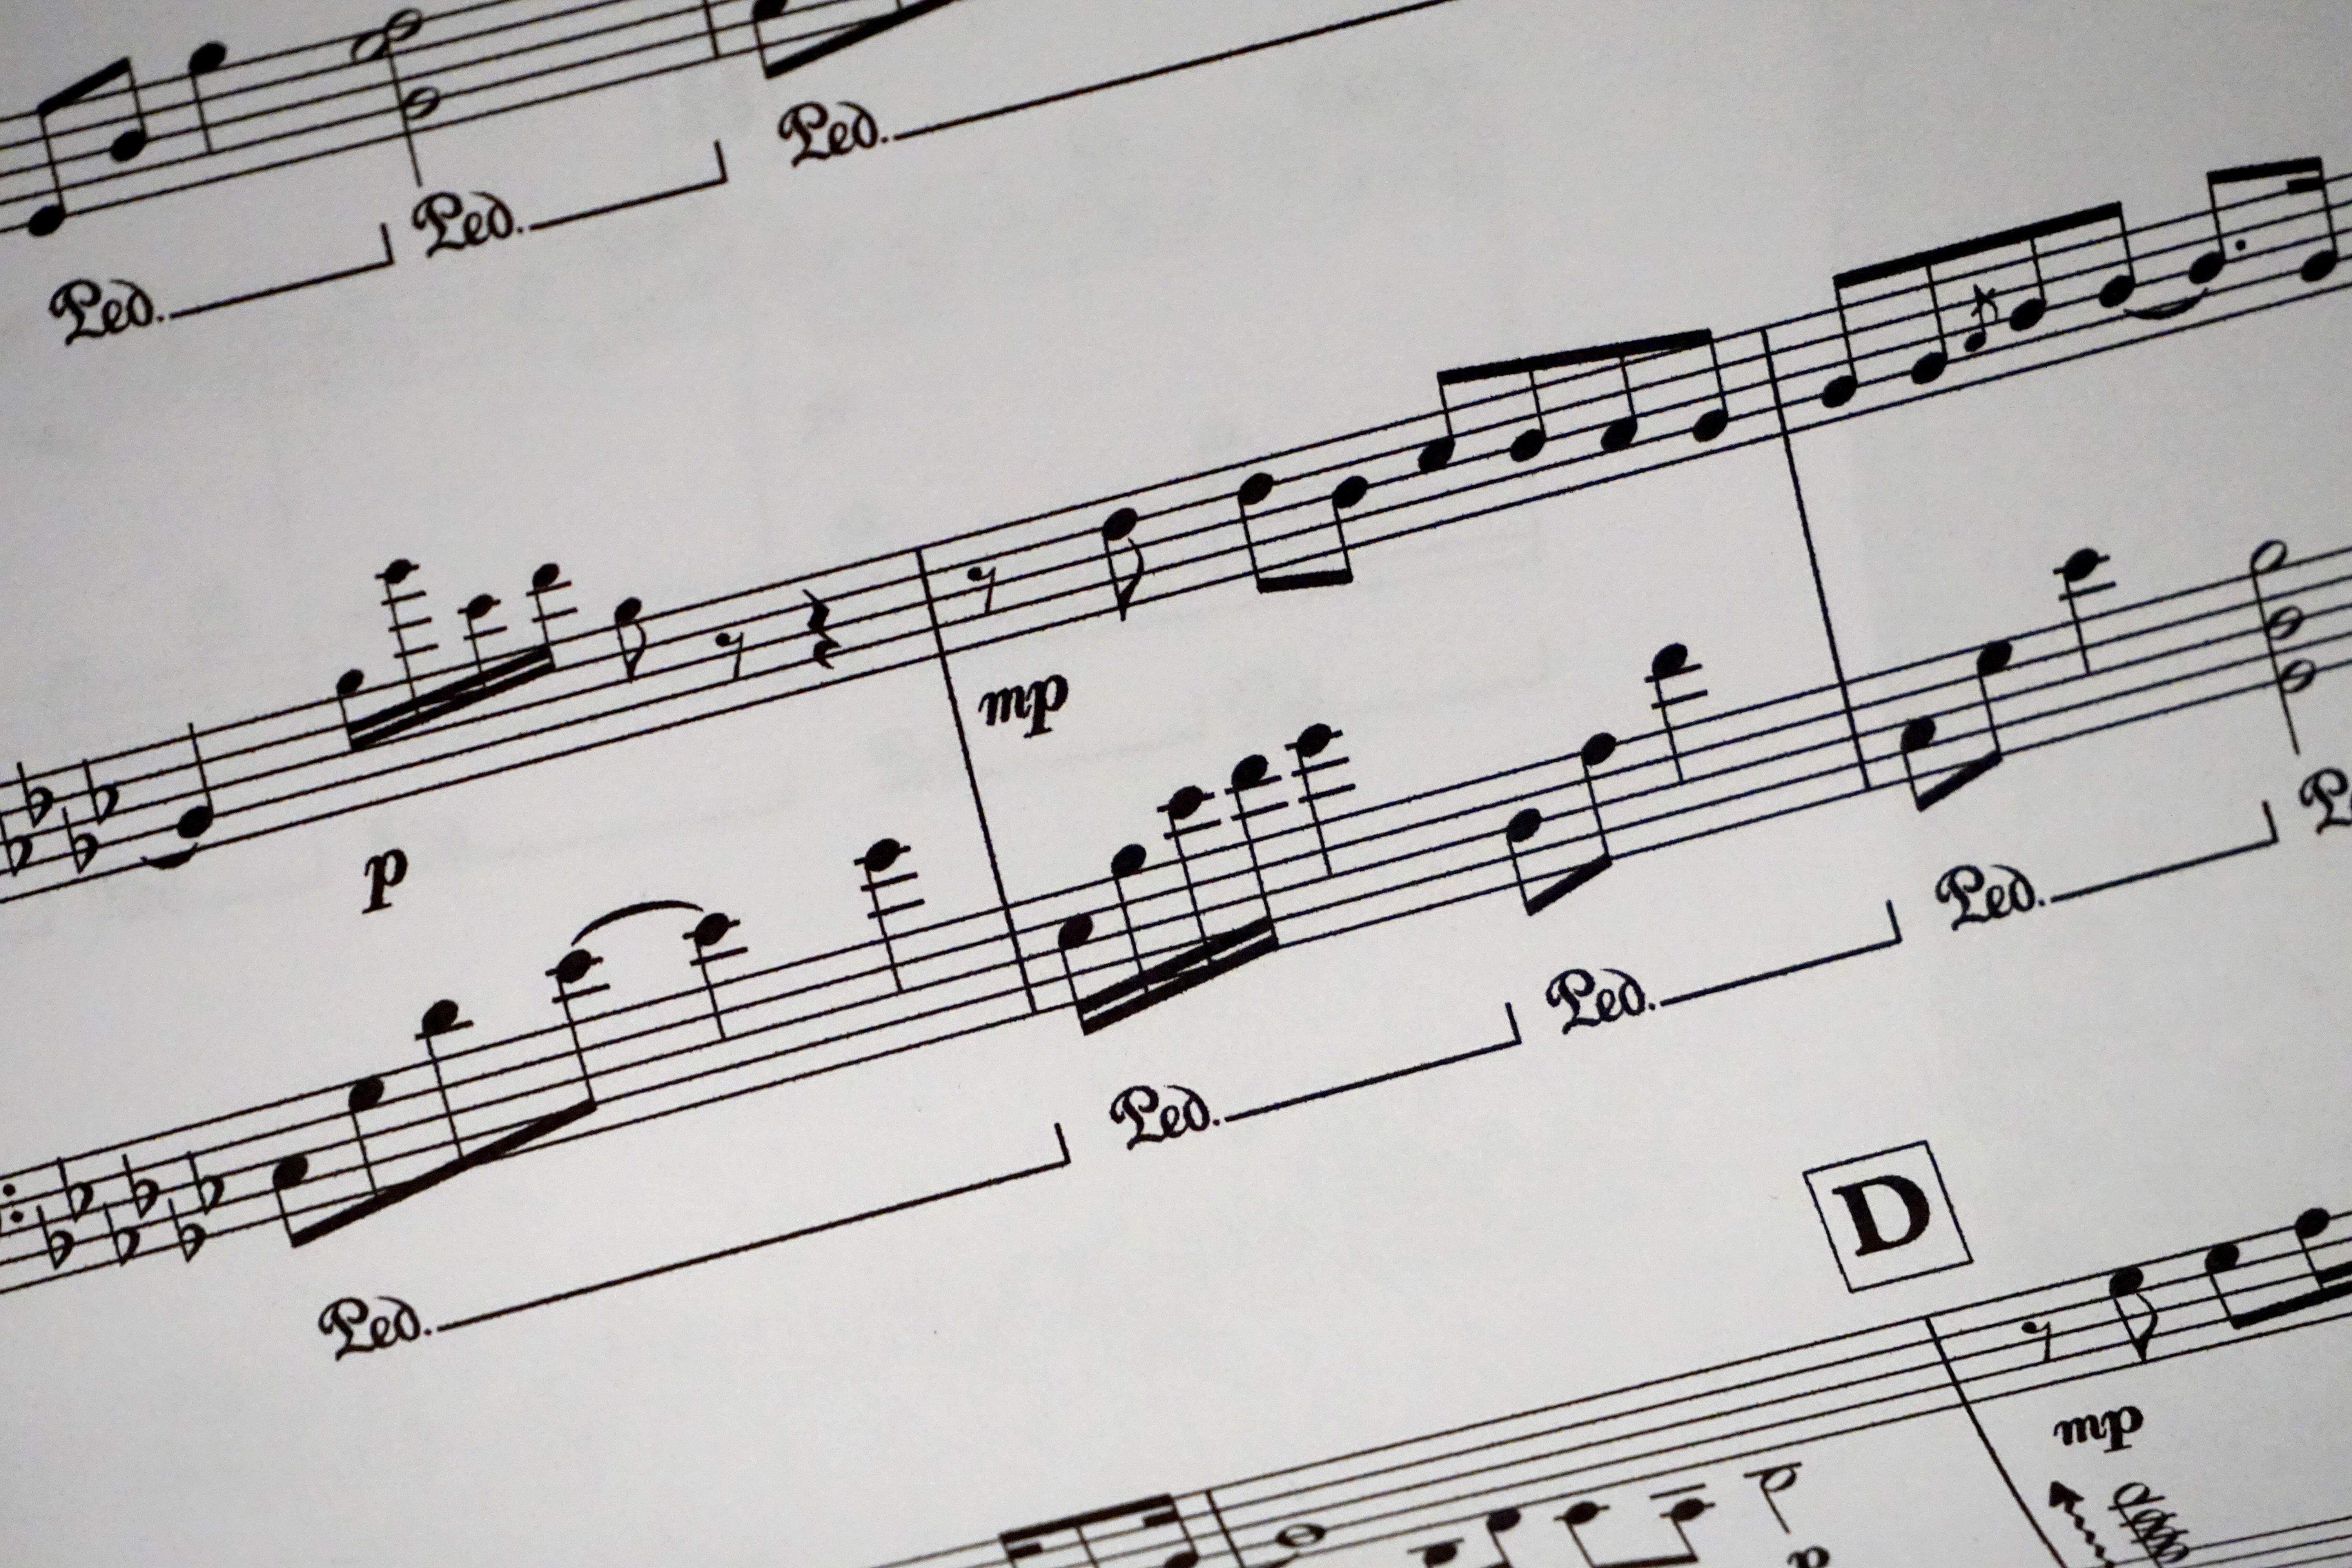 Sheet Music Showing Musical Notes Free Stock Photo